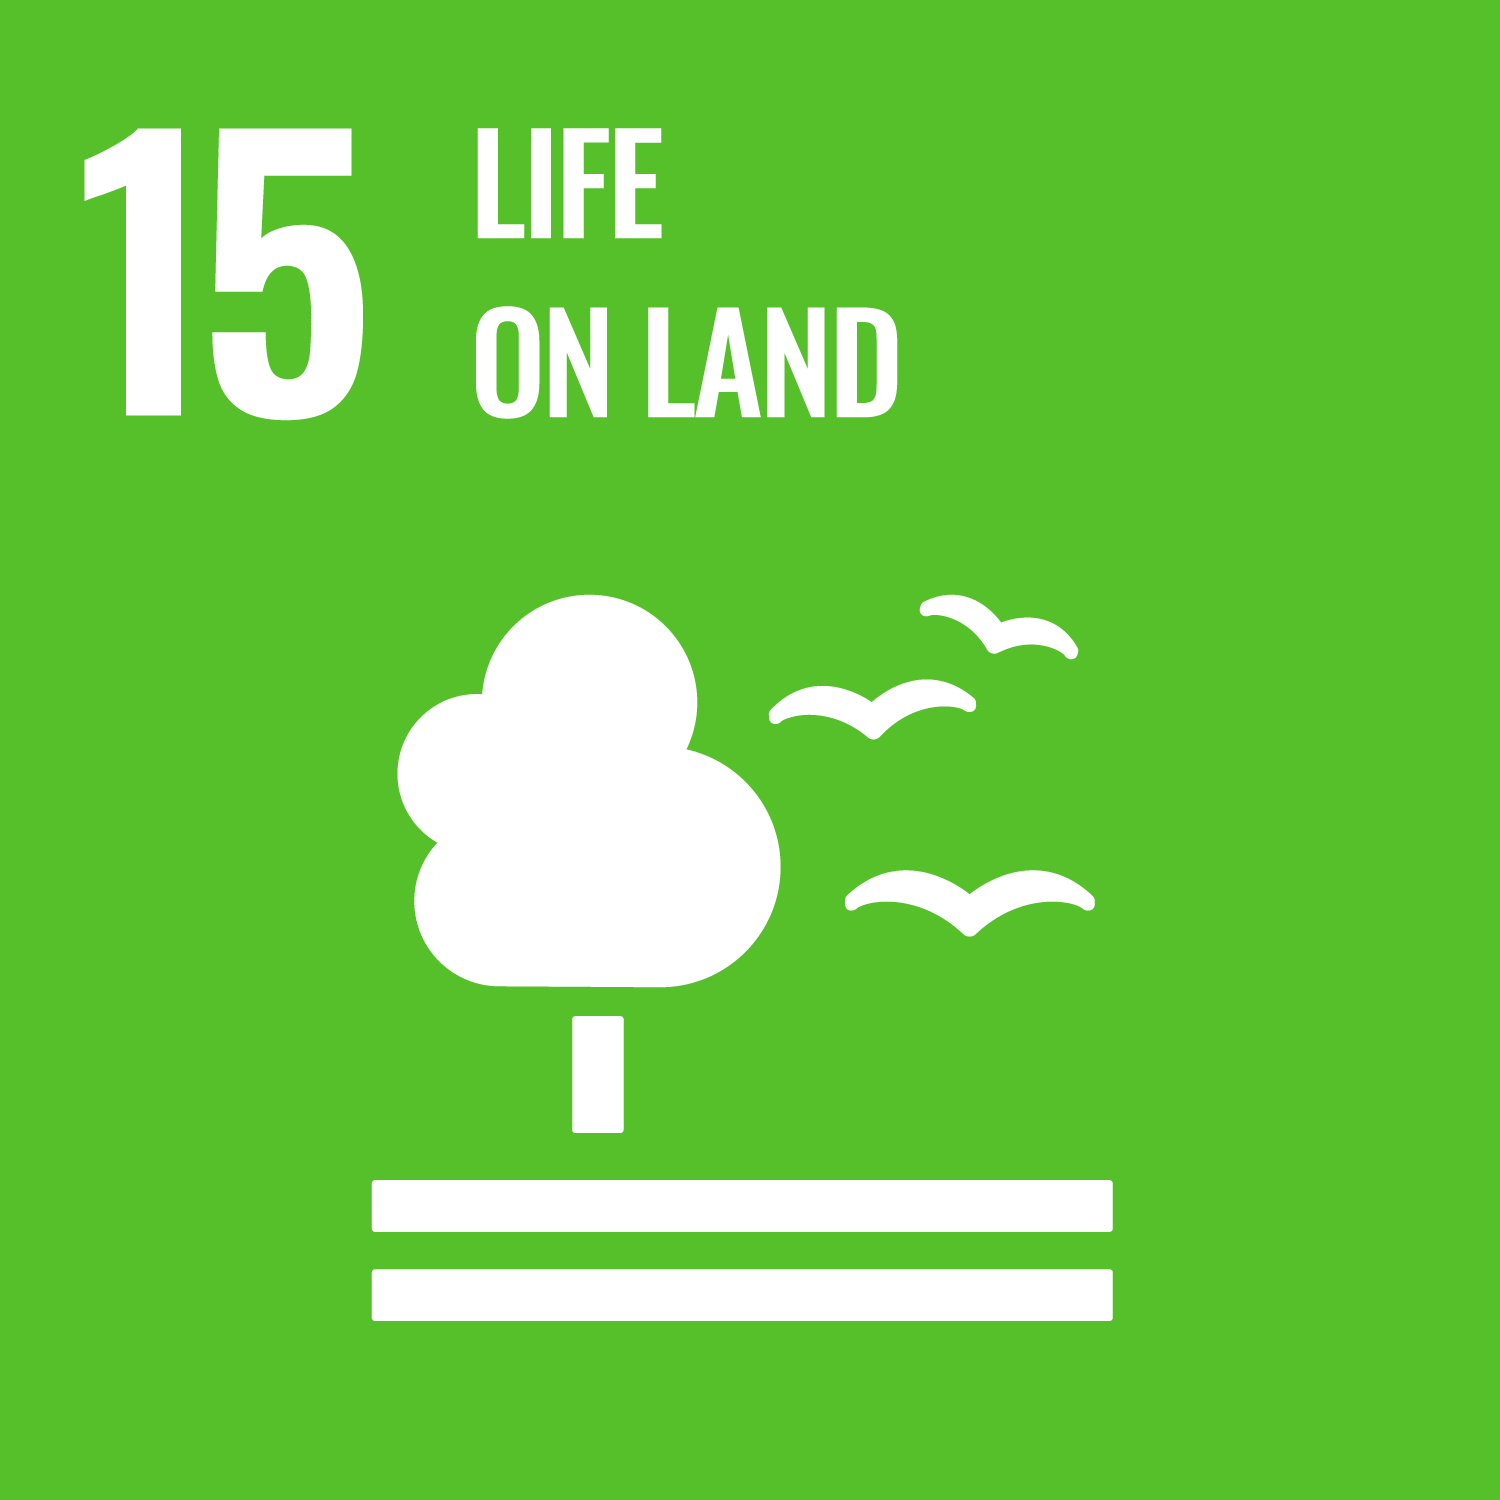 Sustainable Development Goals – Life on Land